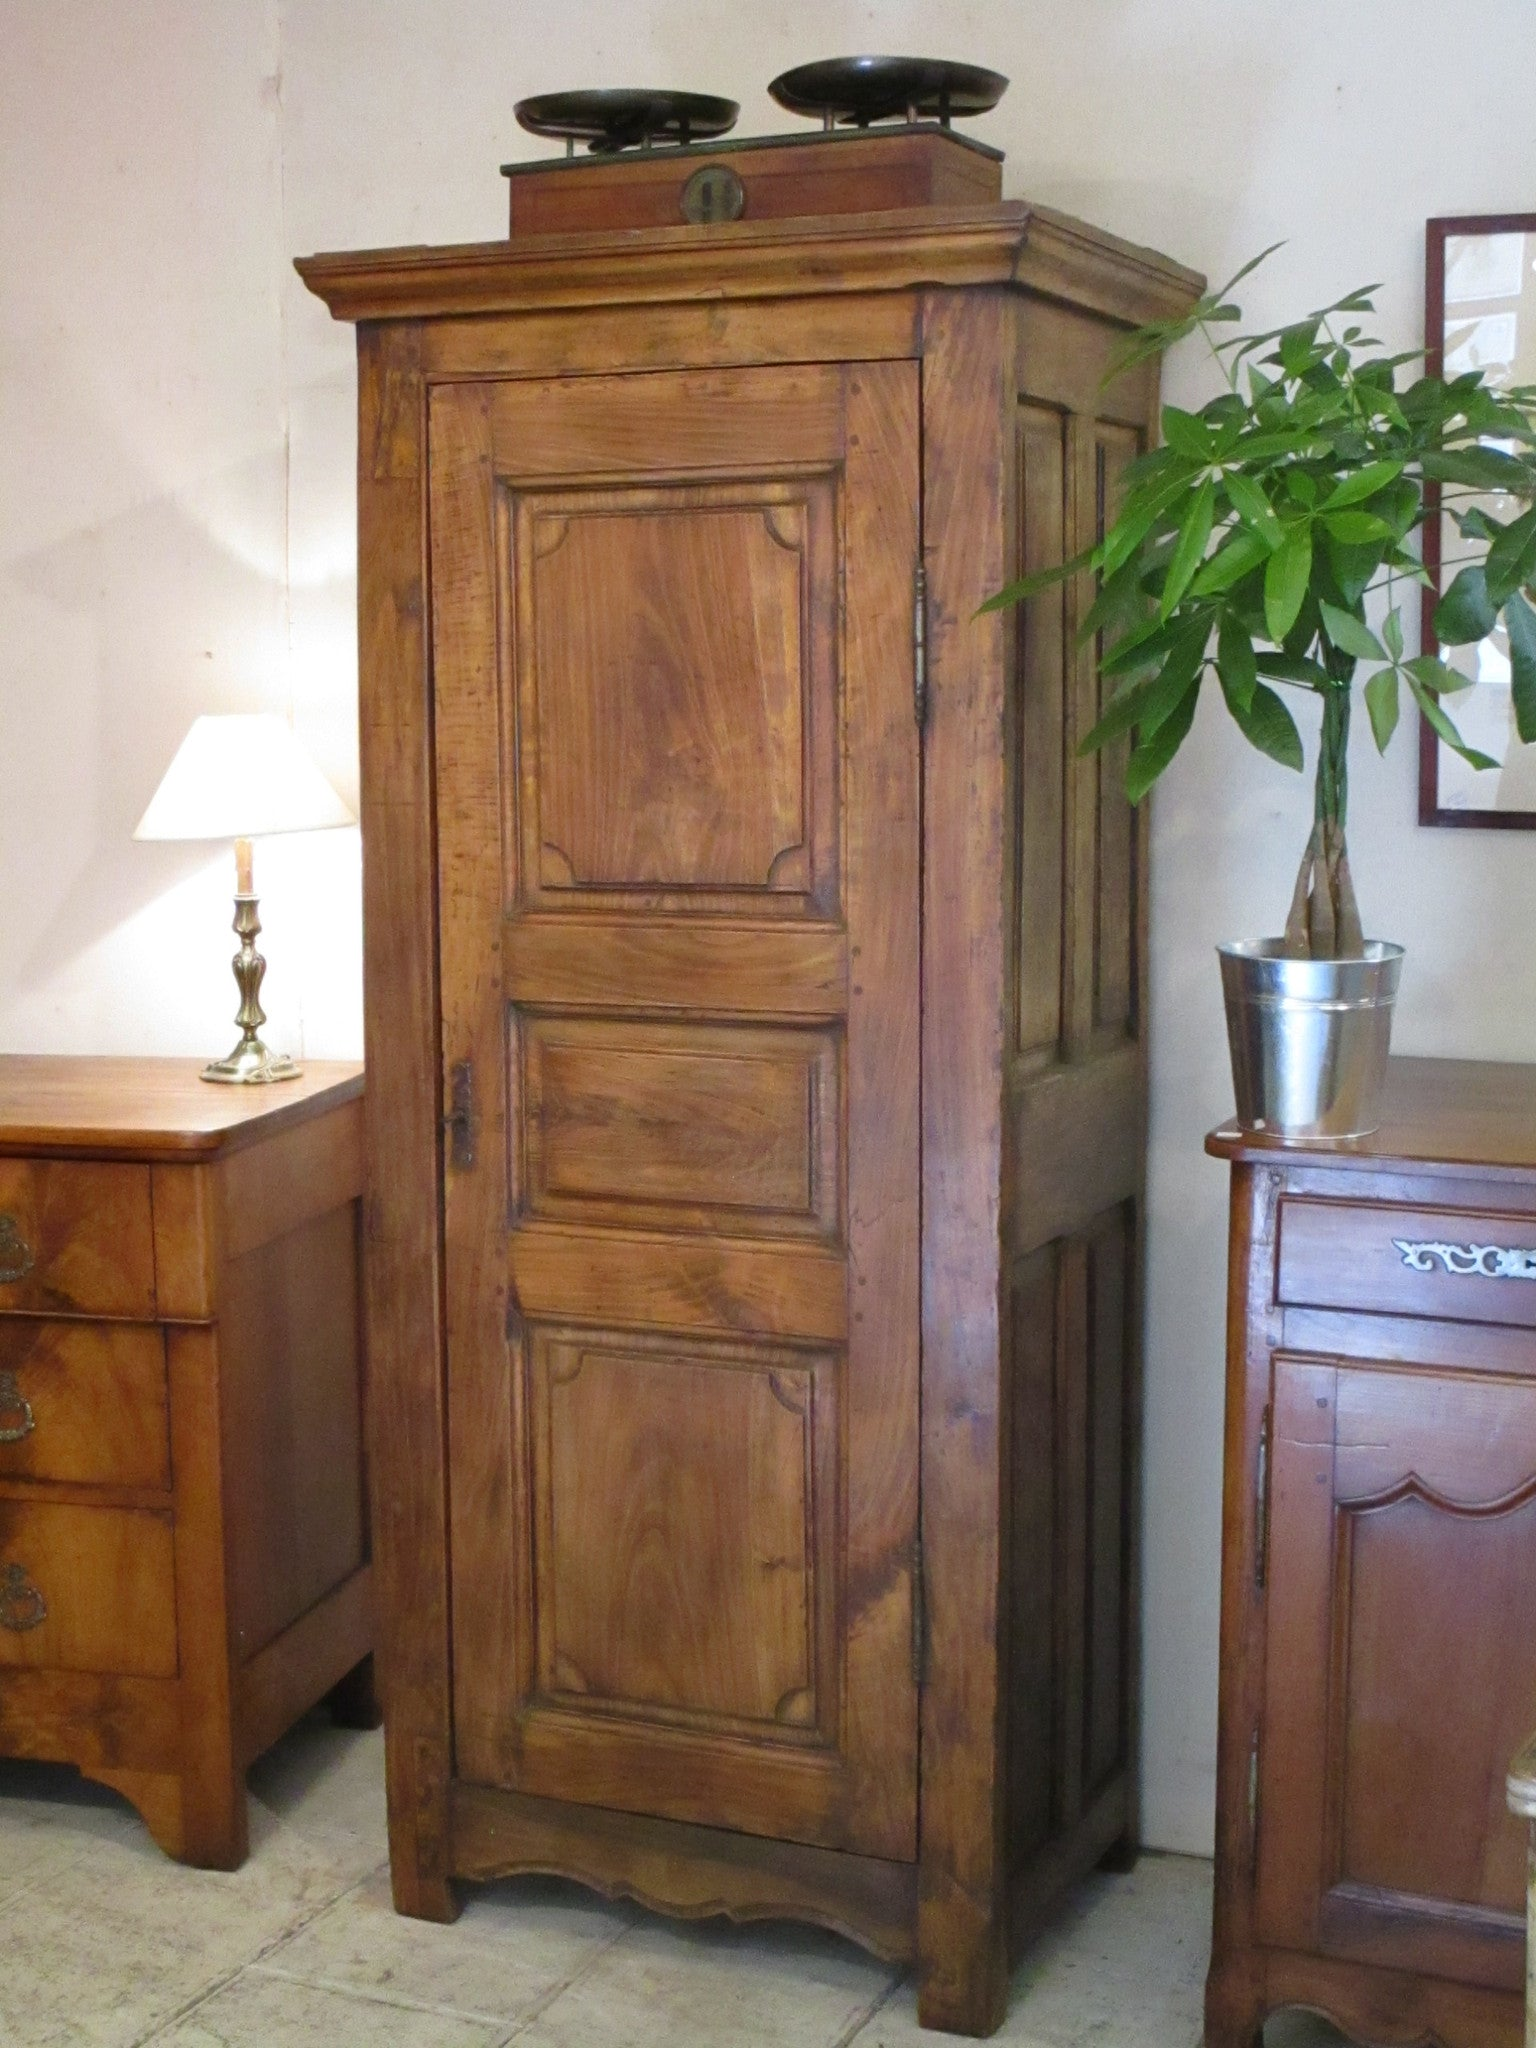 Petite 19th century French armoire